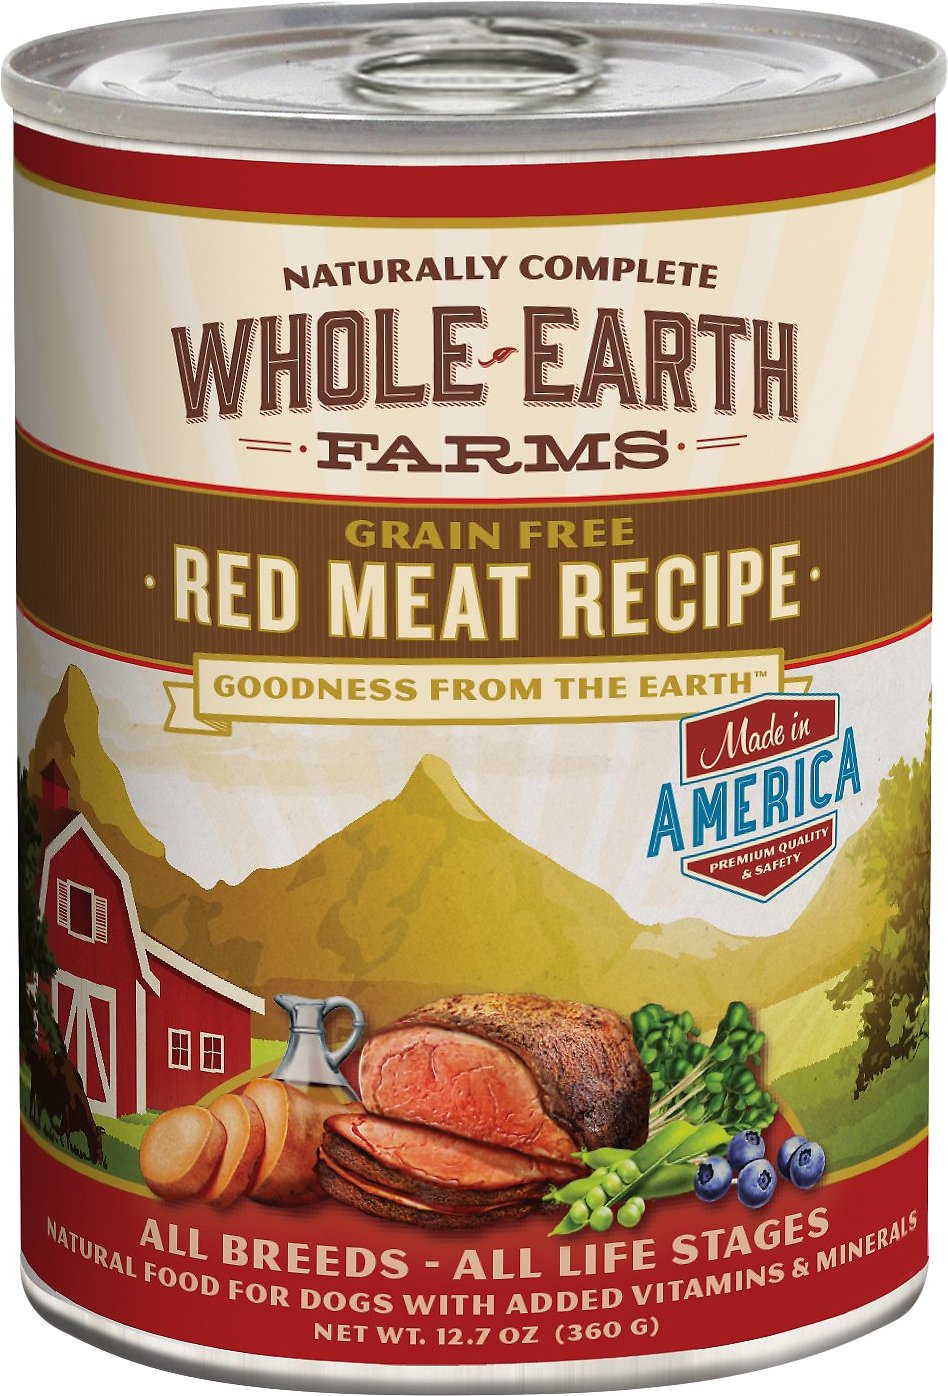 Whole Earth Farms Grain-Free Red Meat Recipe Canned Dog Food, 12.7-oz